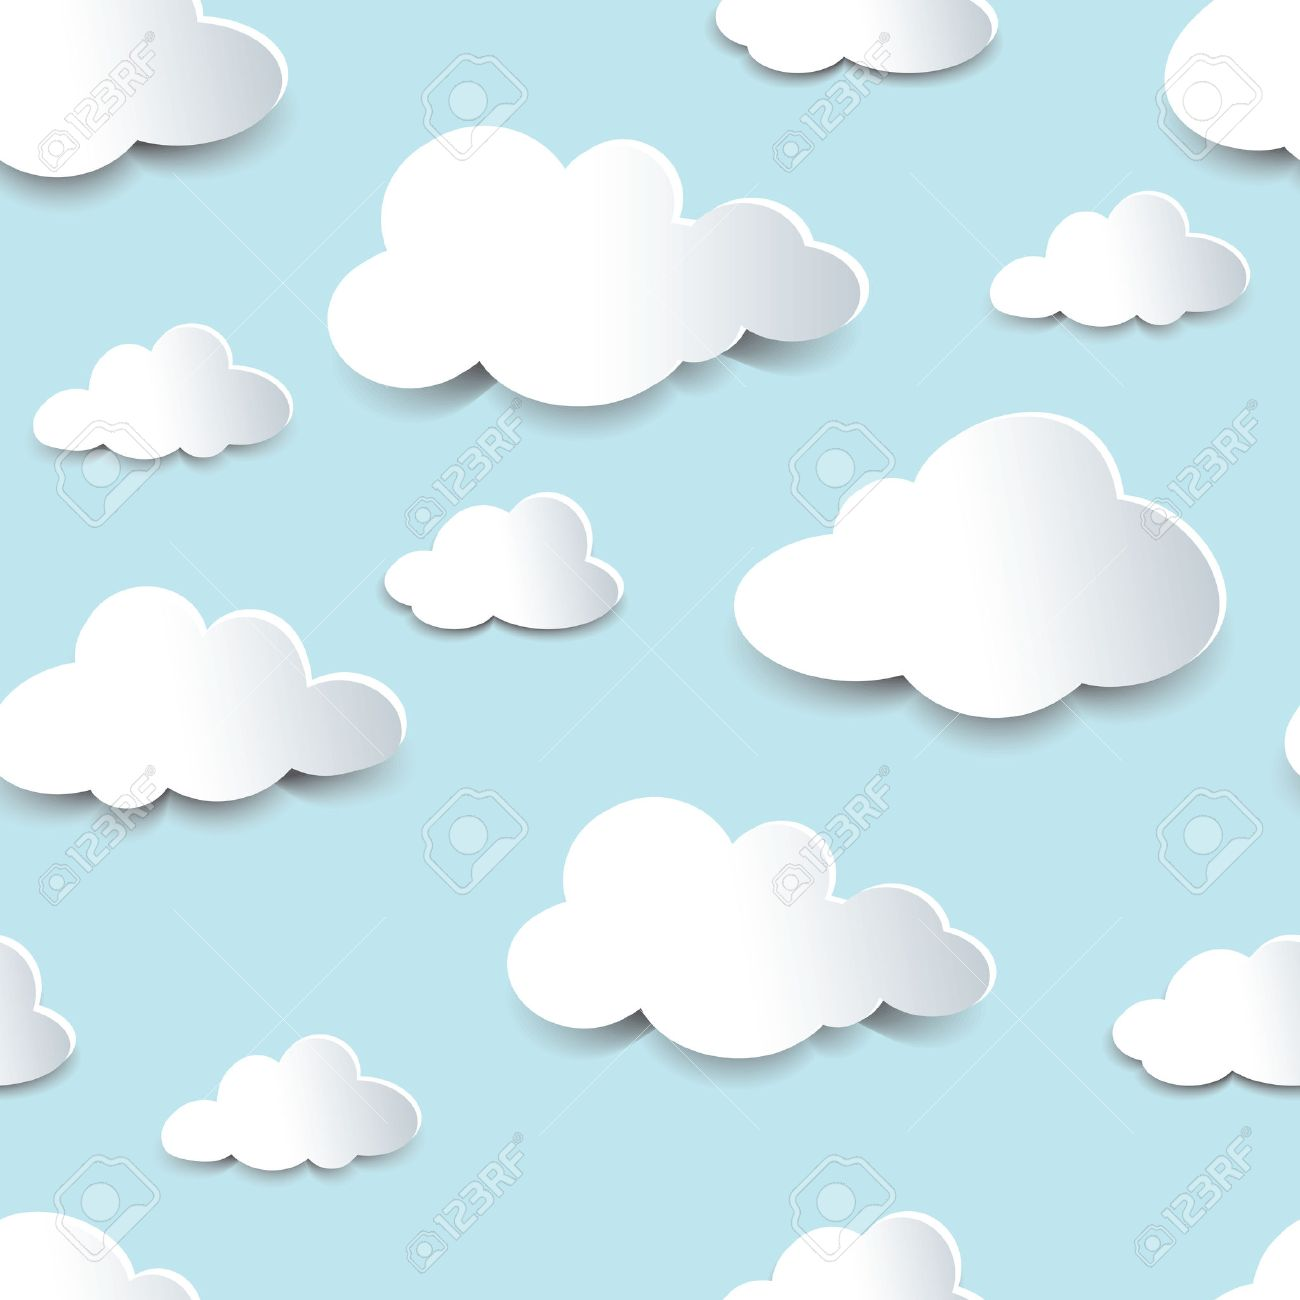 Seamless background of fluffy clouds, paper cutout with shadow effect. - 51690844